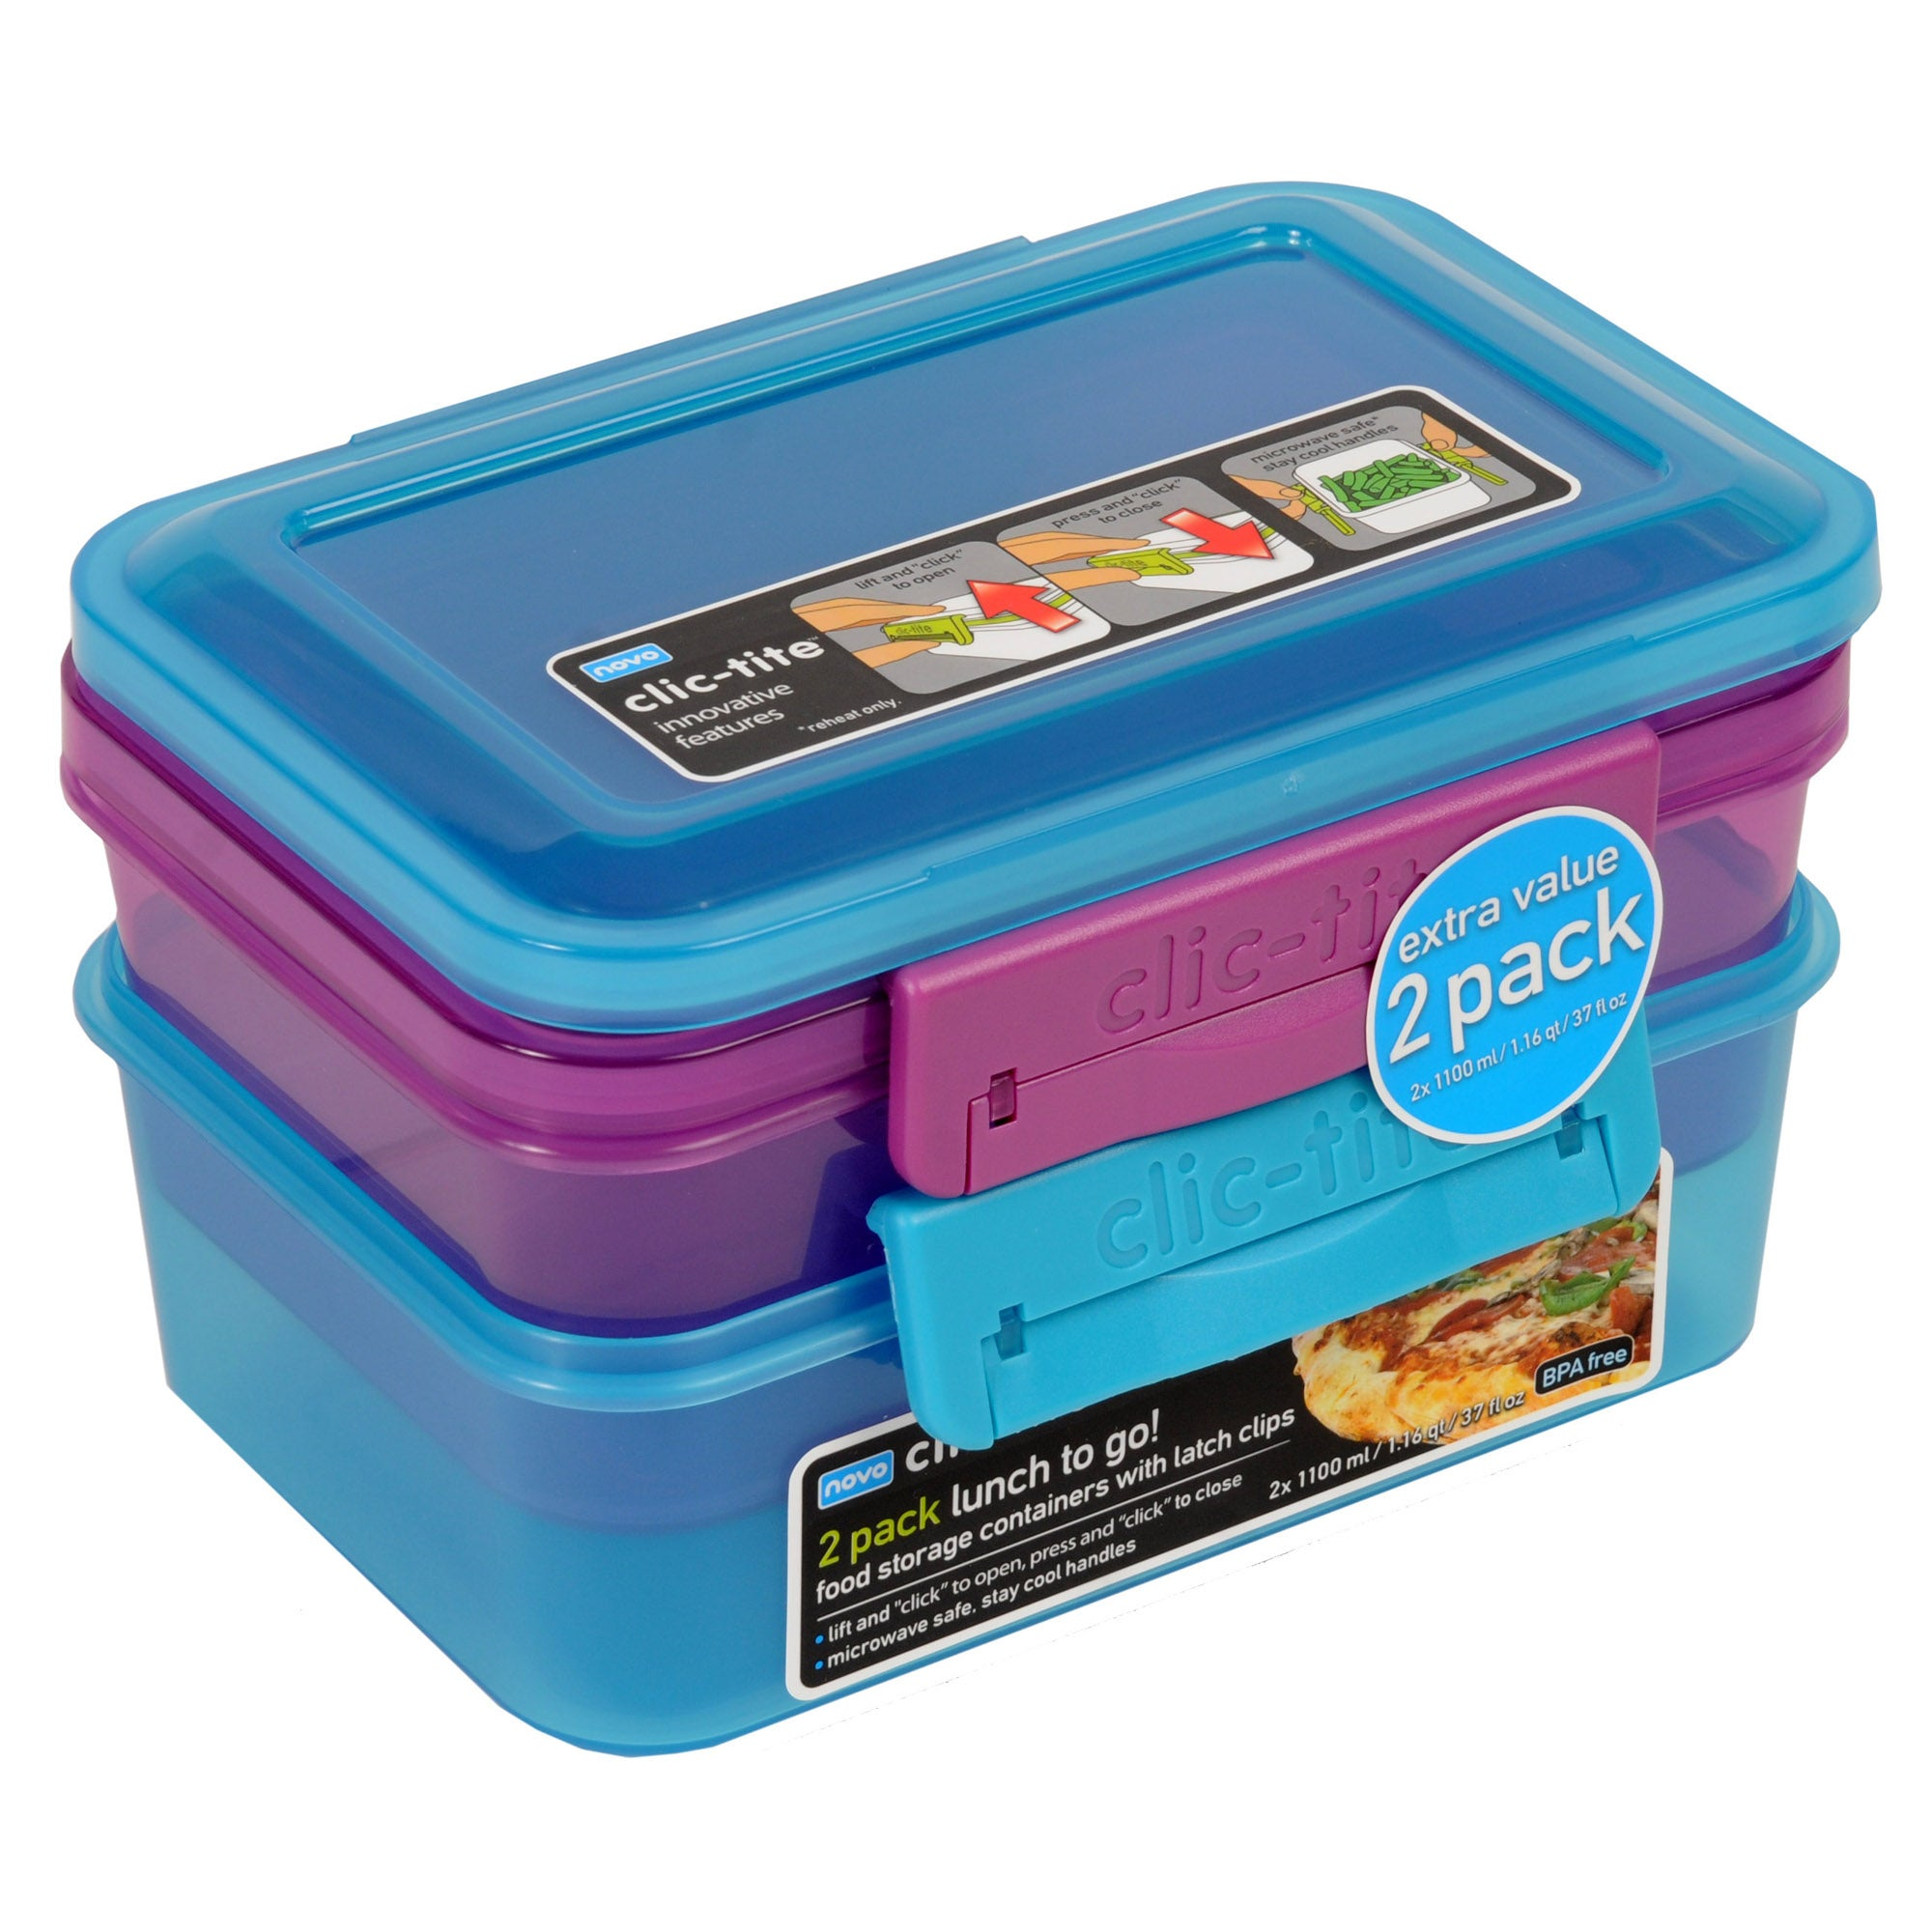 Clic-Tite Pack of Two 1.1 Litre Lunch Boxes